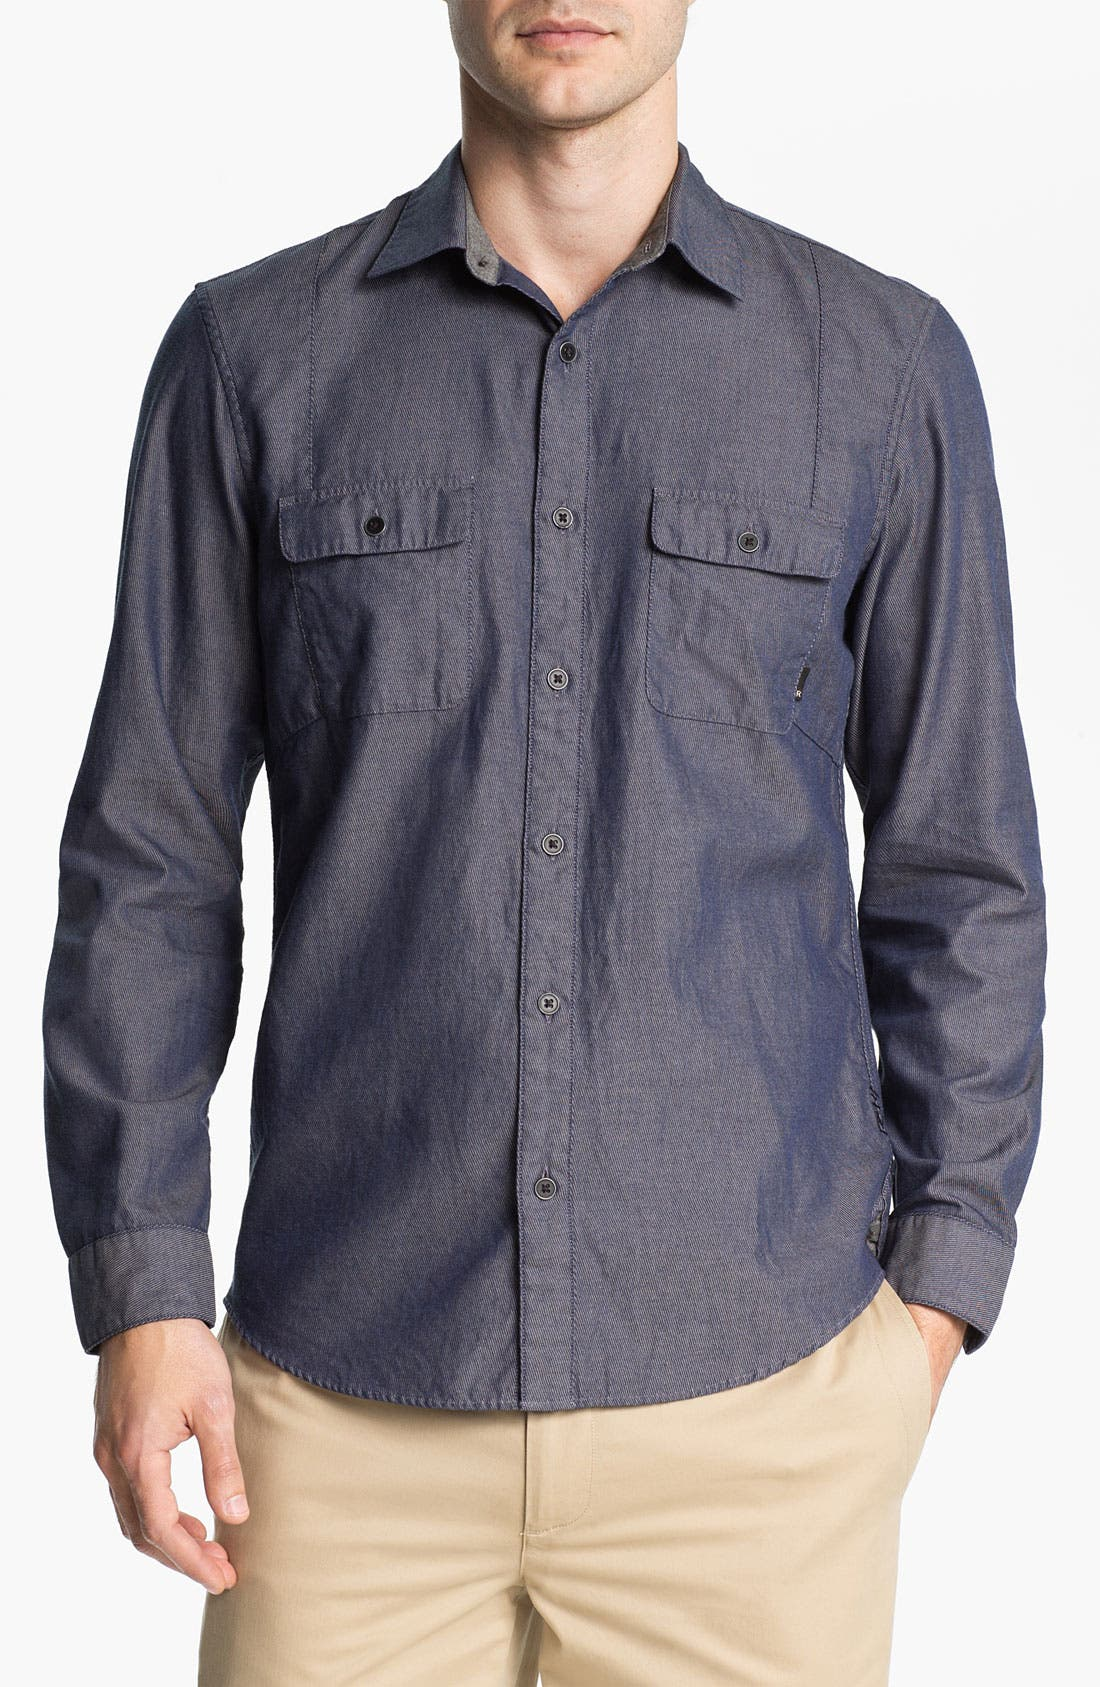 Alternate Image 1 Selected - R44 Rogan Standard Issue Twill Denim Shirt